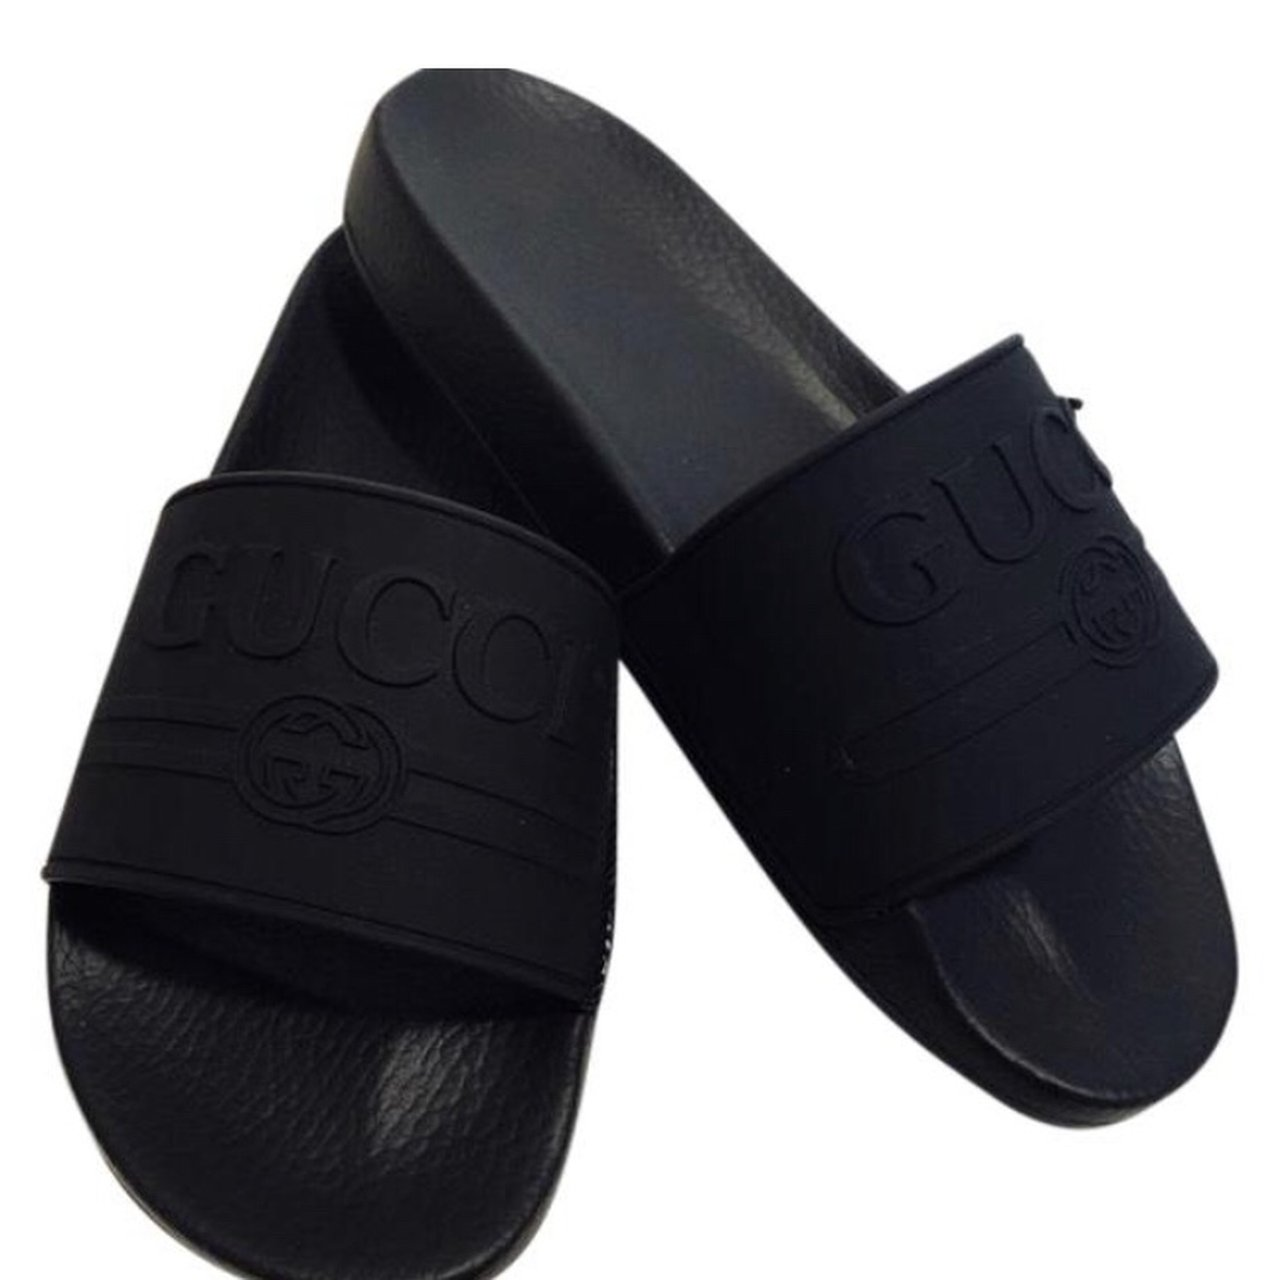 0bc04aa53 AUTHENTIC GUCCI rubber logo slides. NWT (new with tag)